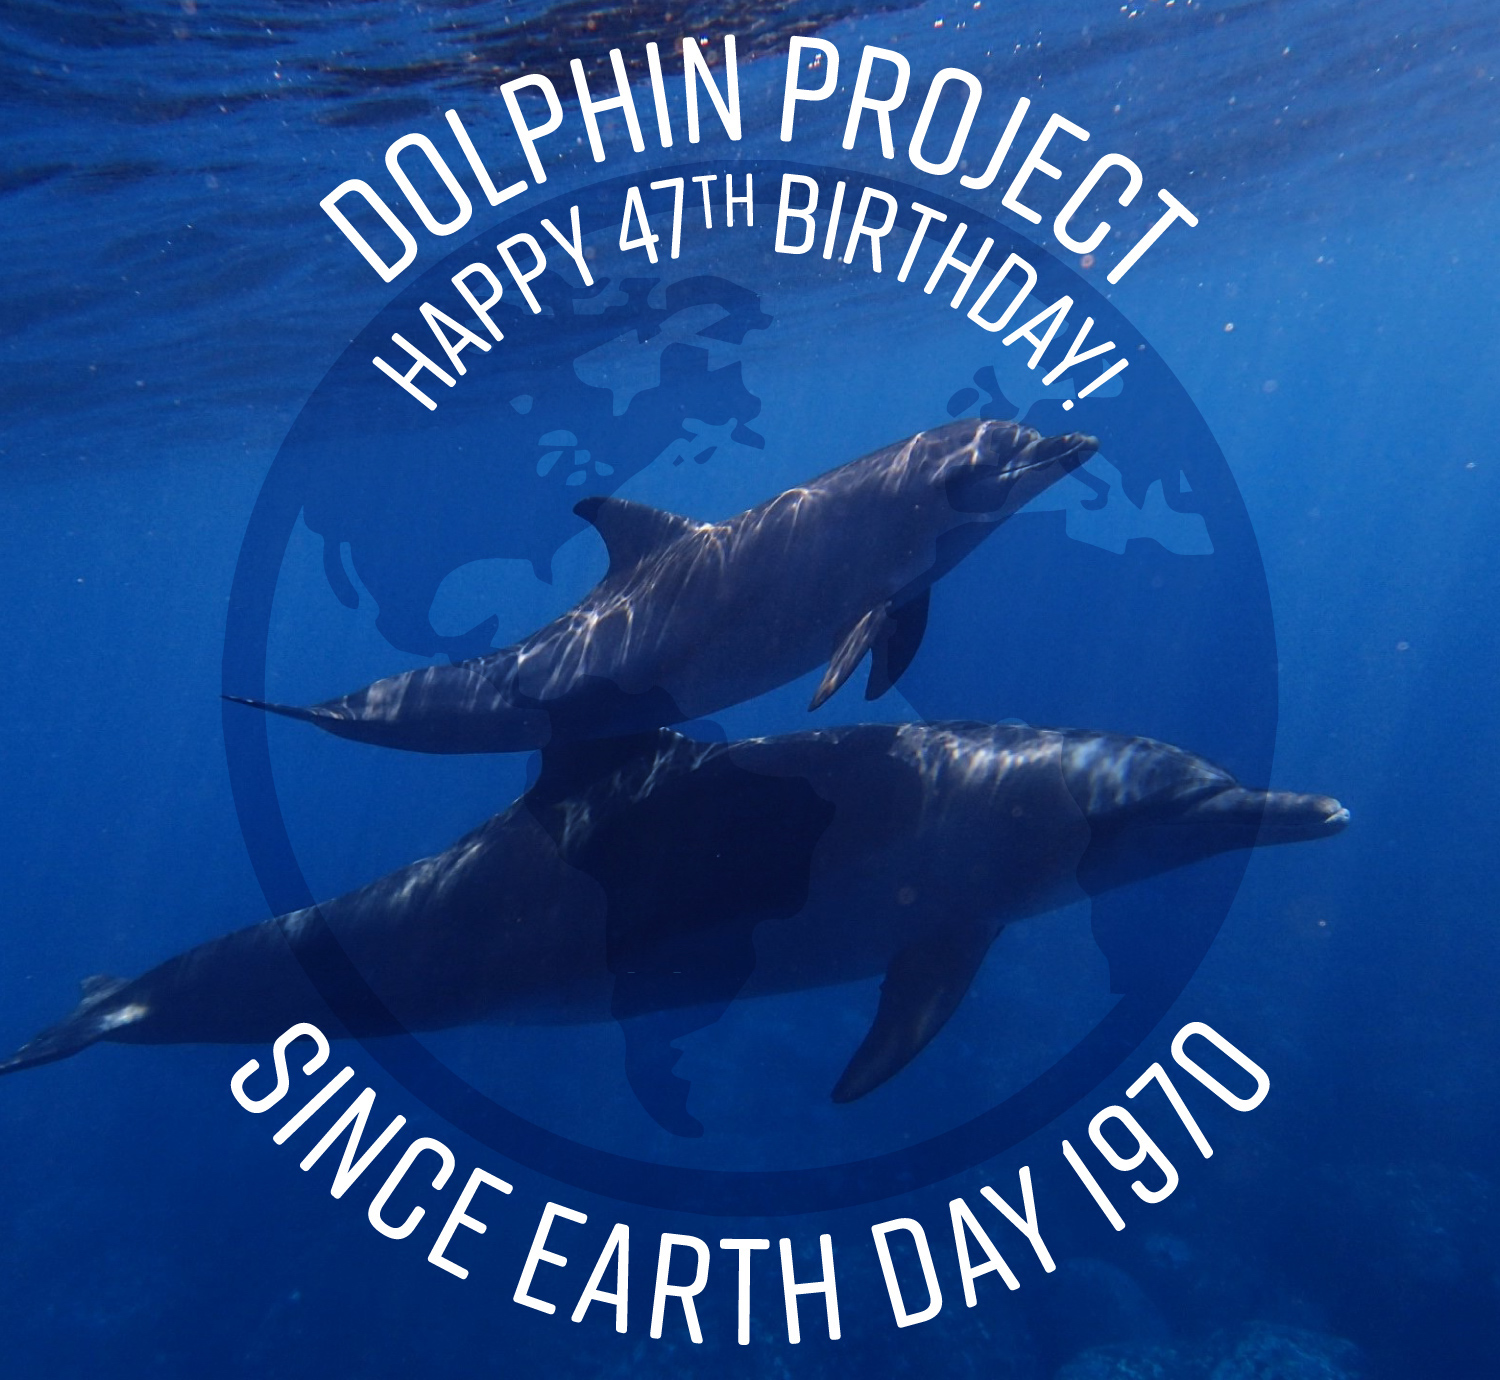 2017 marked Dolphin Project's 47th birthday.